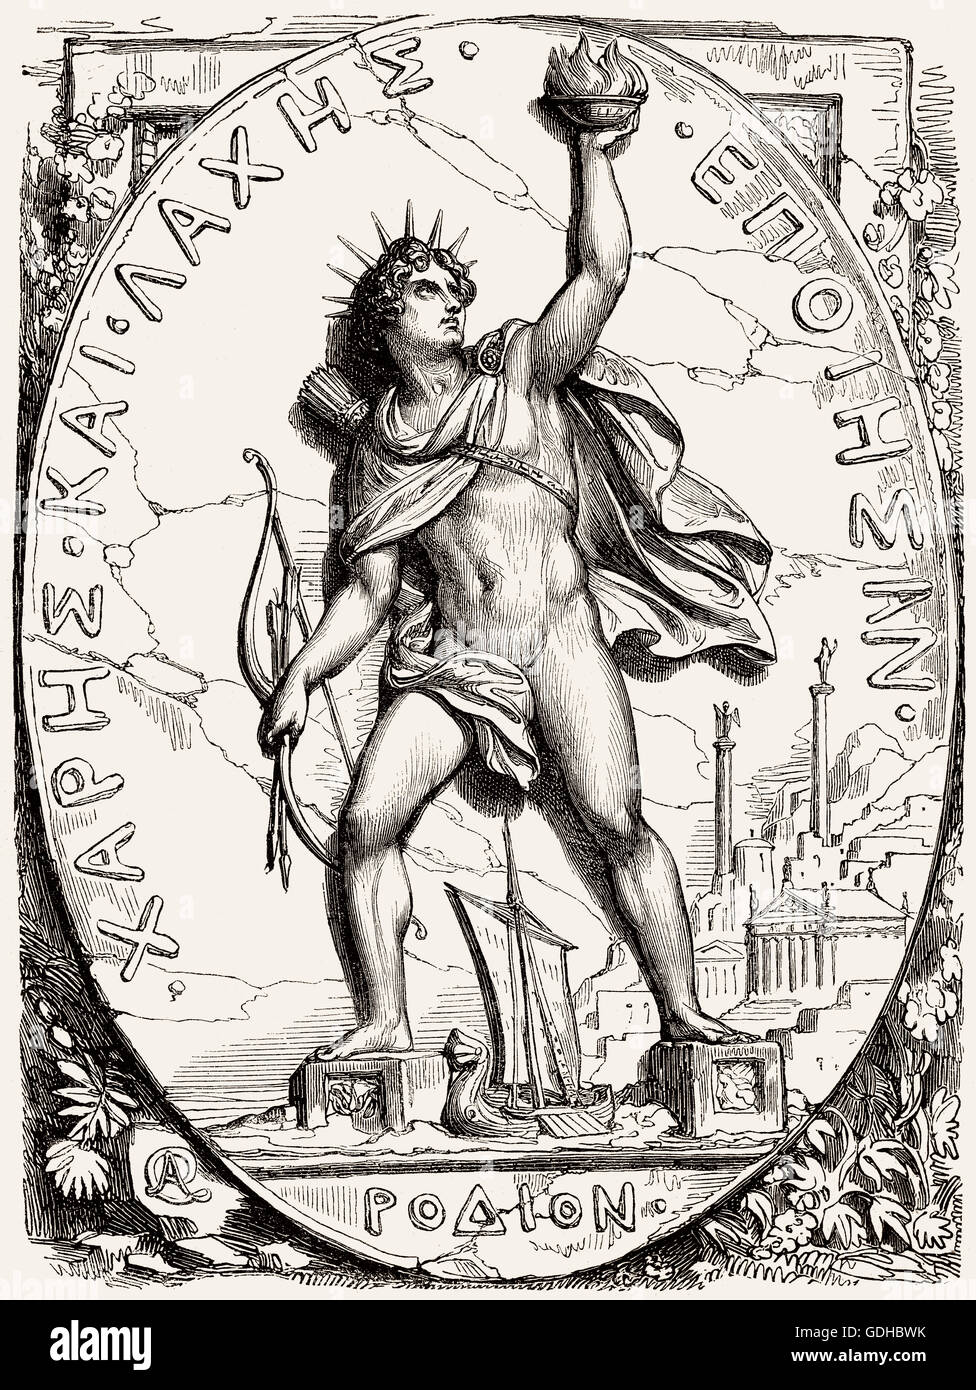 The Colossus of Rhodes, a statue of the Greek titan-god of the sun Helios, erected in 280 BC - Stock Image